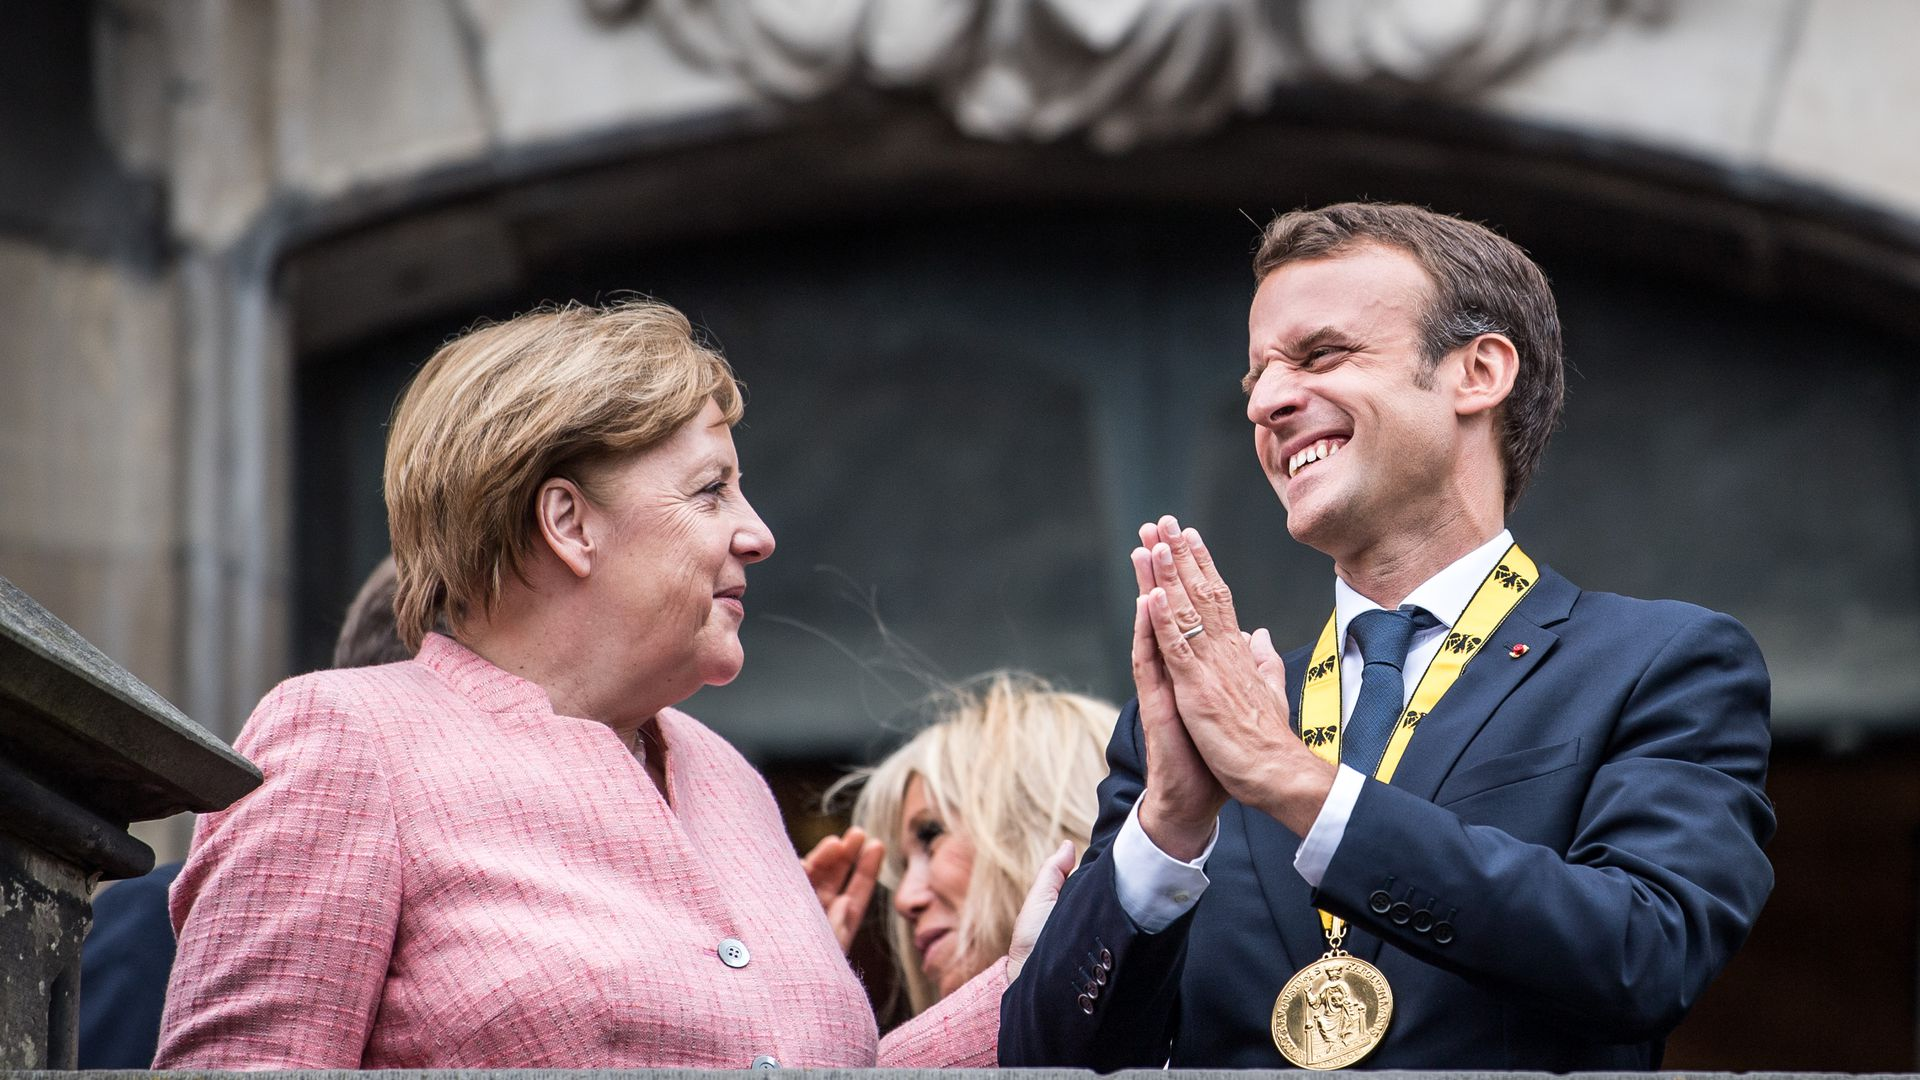 German Chancellor Angela Merkel and French President Emmanuel Macron gesture on the balcony of the town hall of Aachen